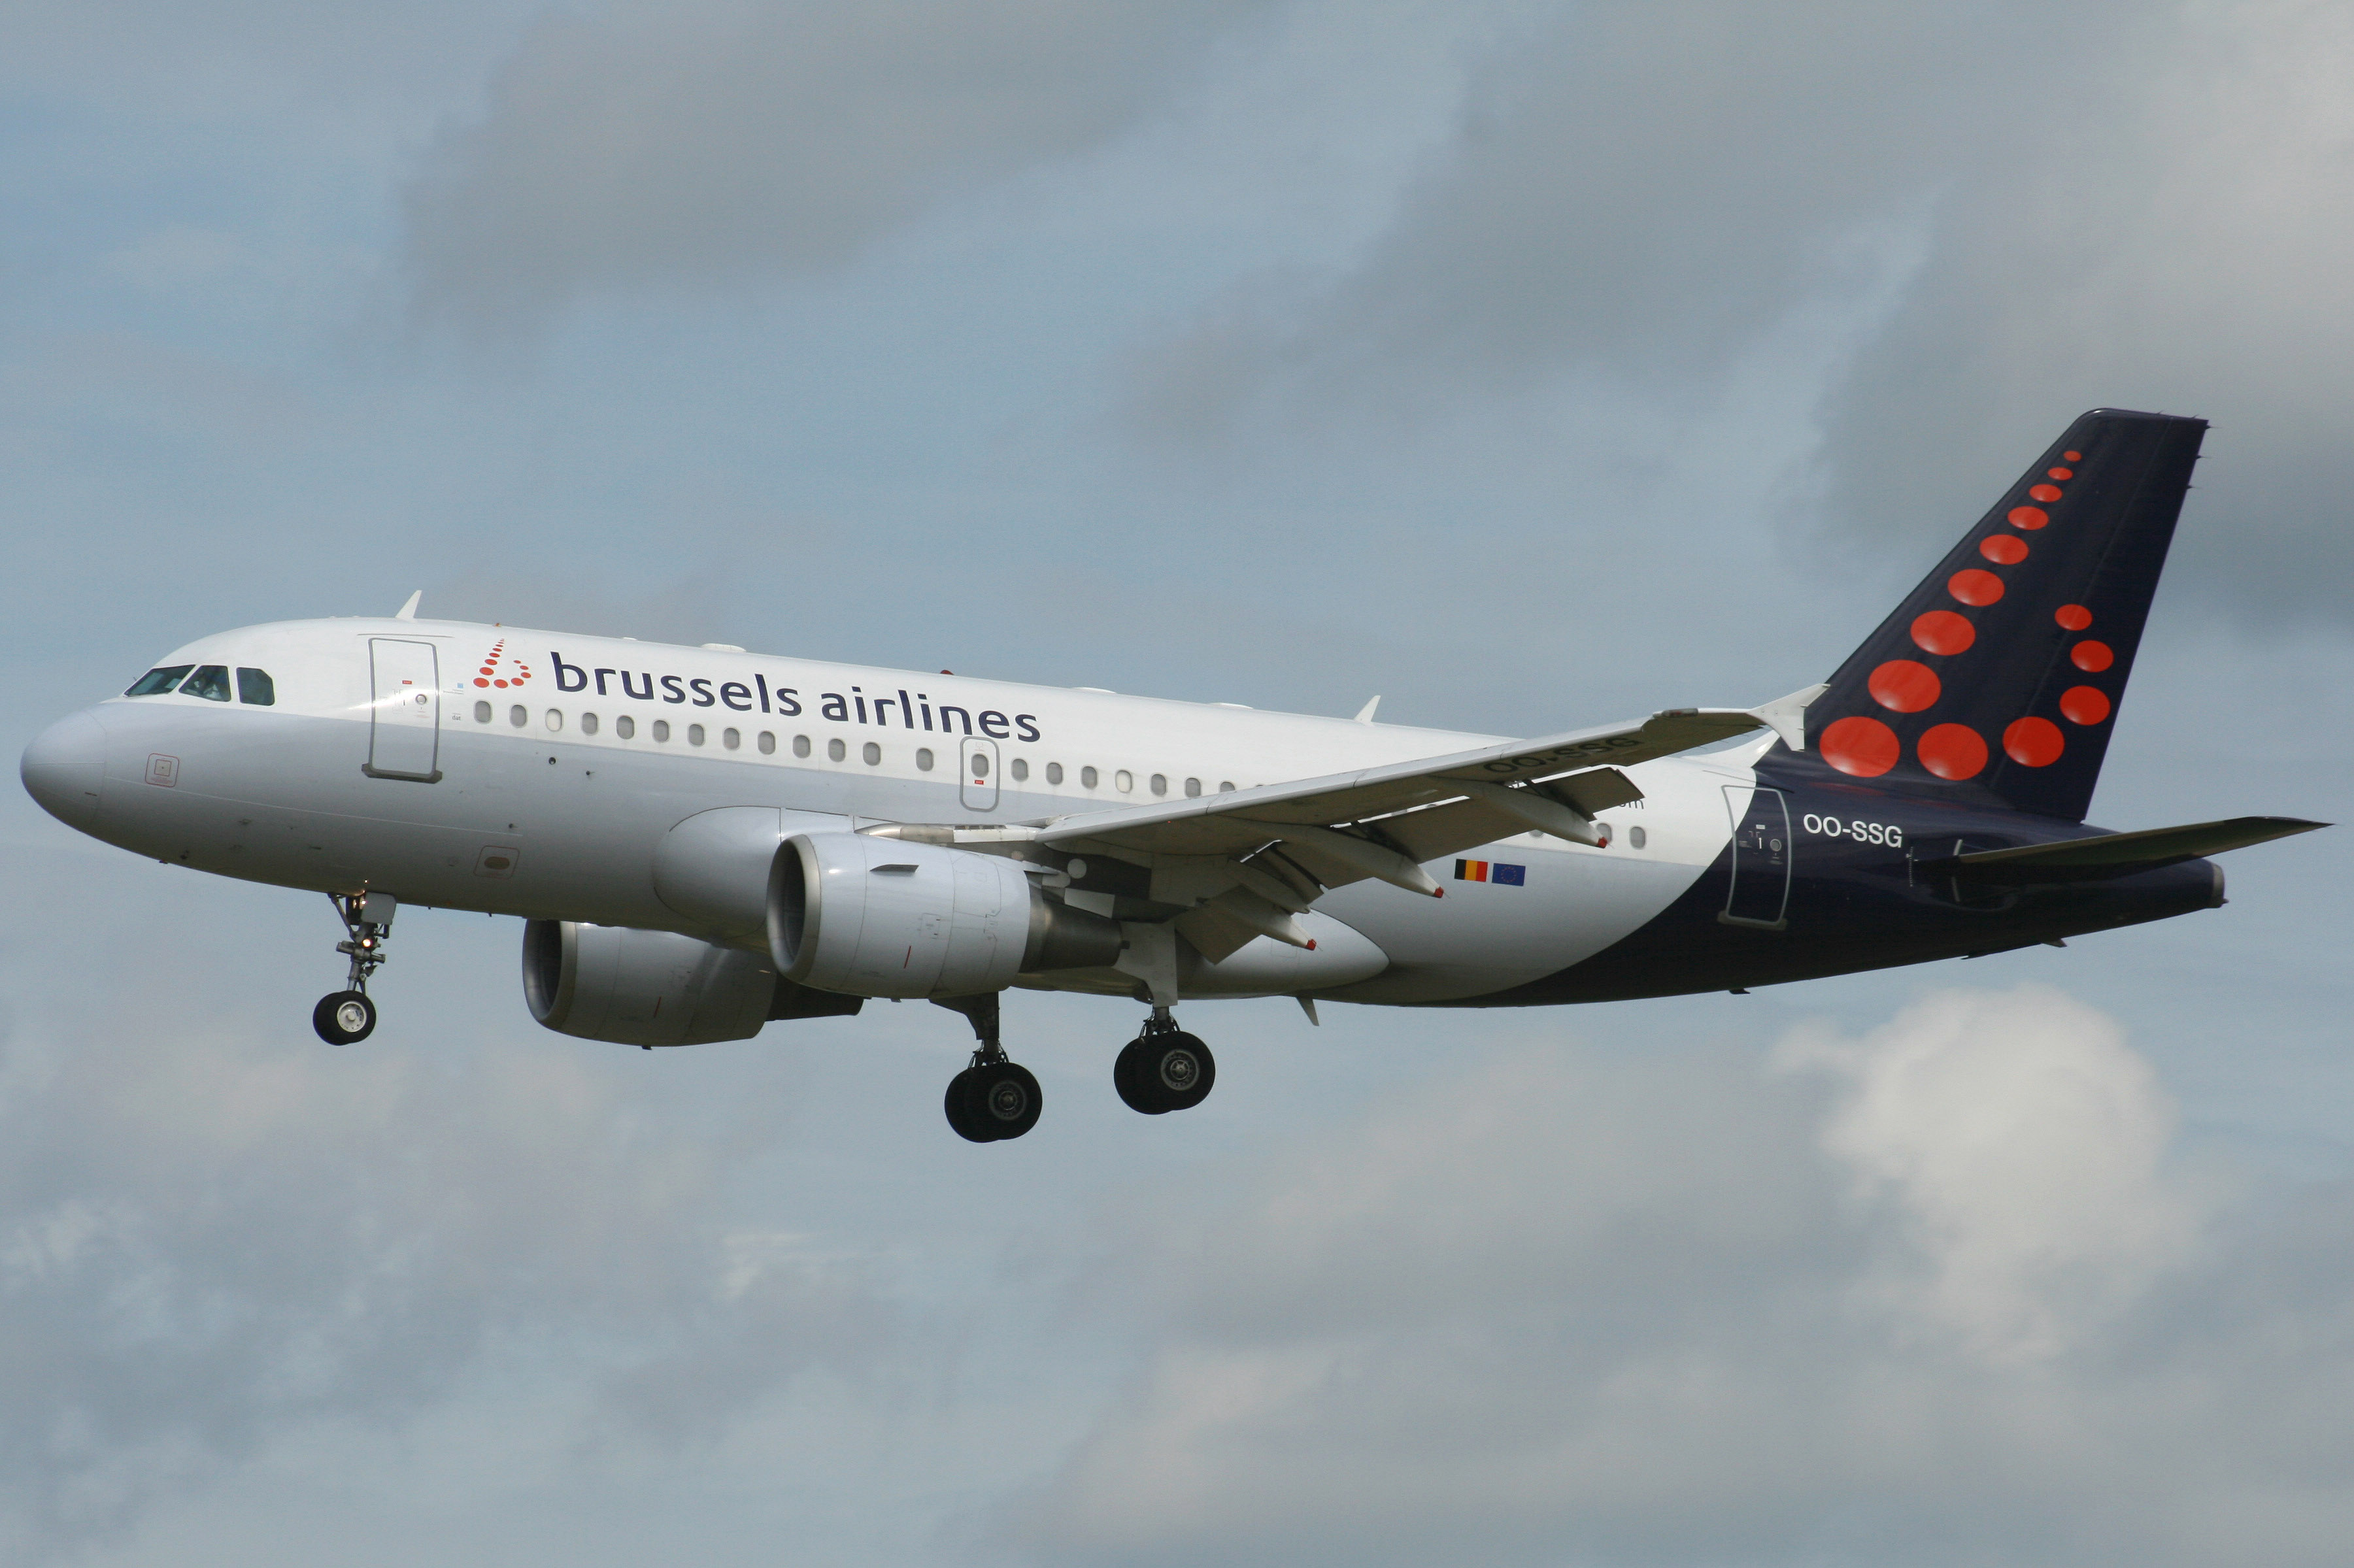 Brussels_Airlines_A319-112_%28OO-SSG%29_landing_at_Brussels_Airport_%281%29.jpg